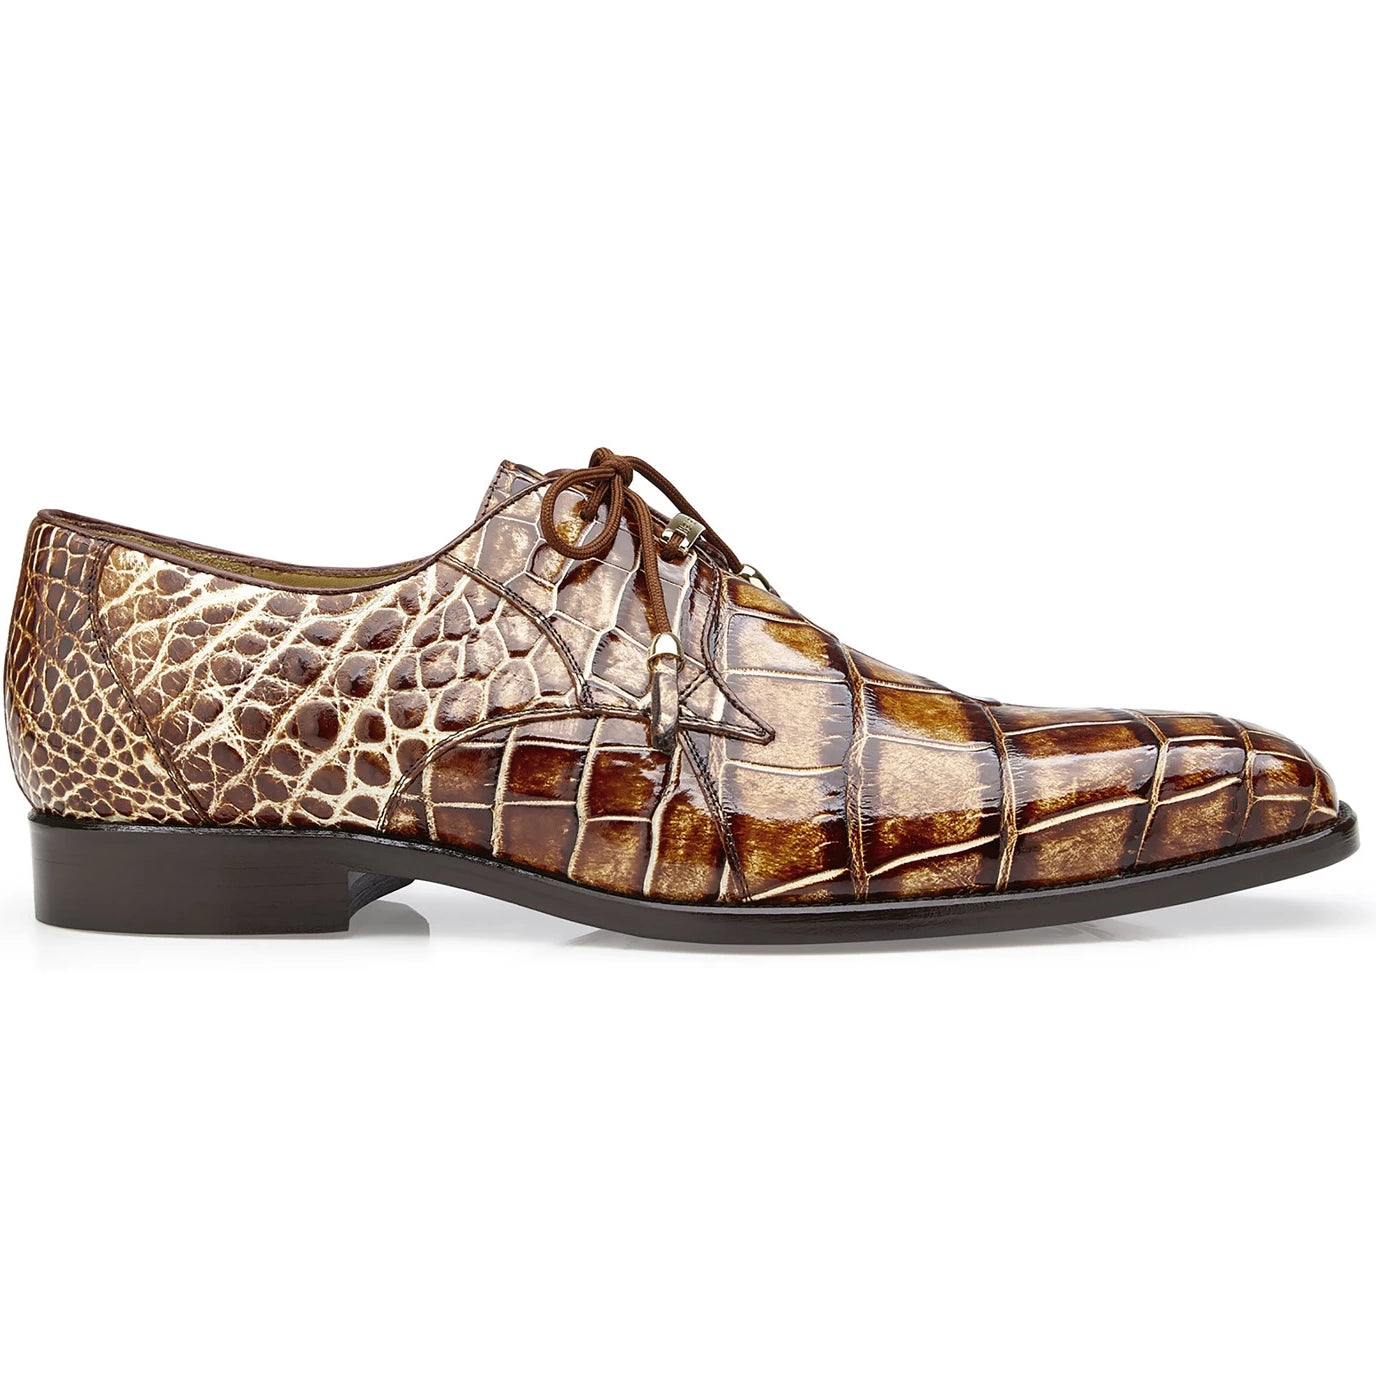 Belvedere Alfred Alligator Skin Lace Up Oxford - Caramel Shoes - Dapperfam.com